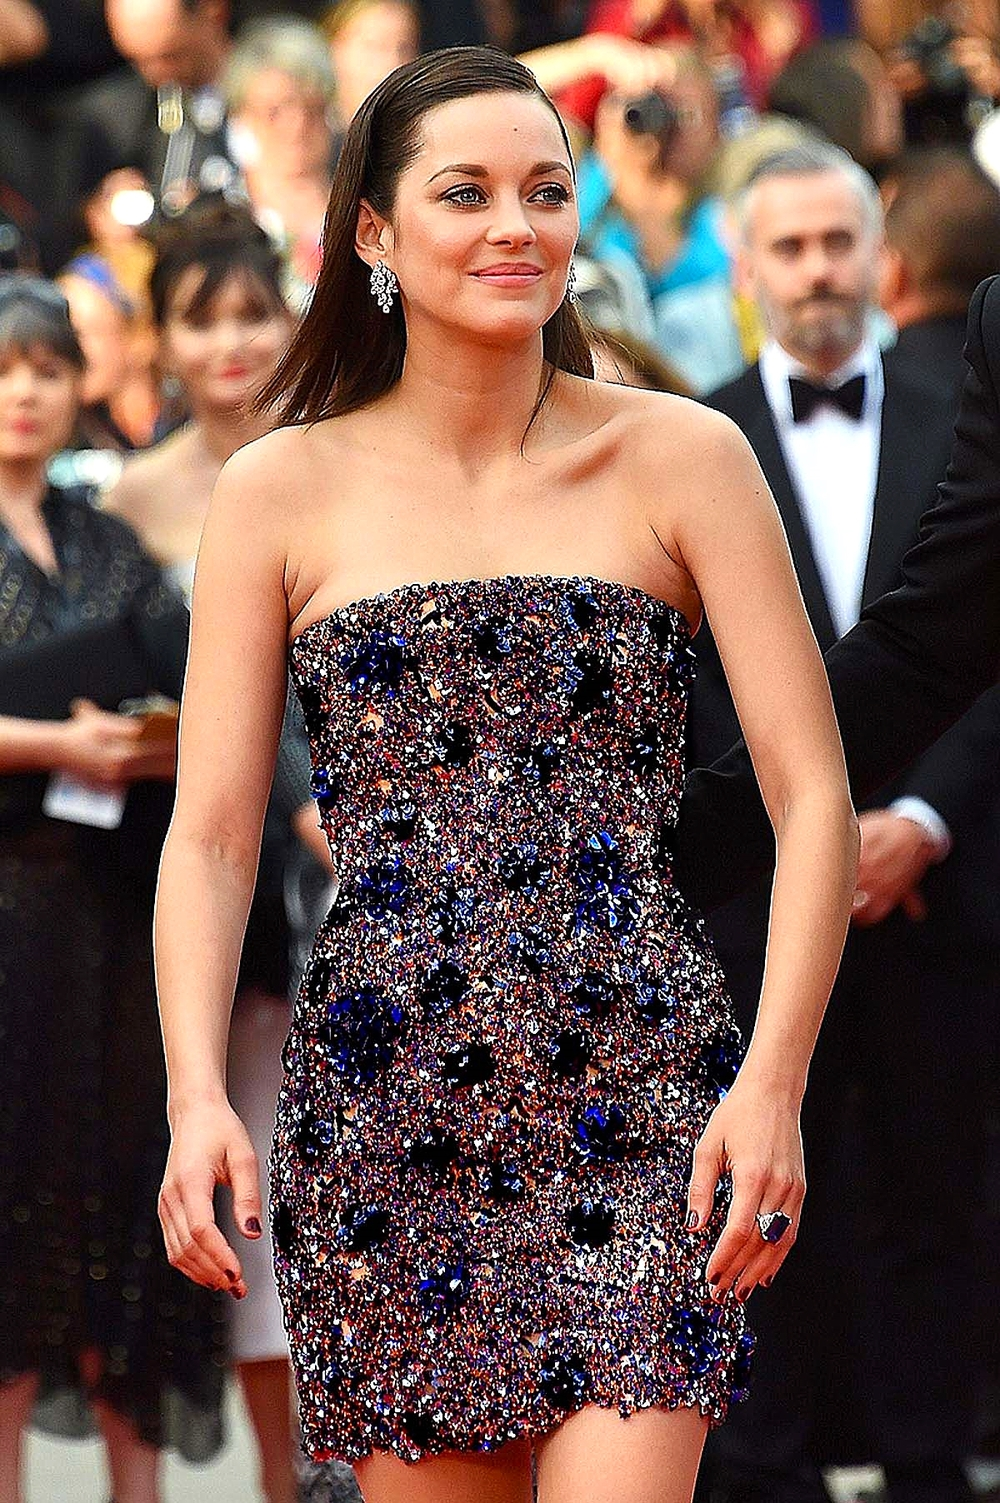 Marion Cotillard in Dior Couture with Chopard jewels                                         dailymail.co.uk